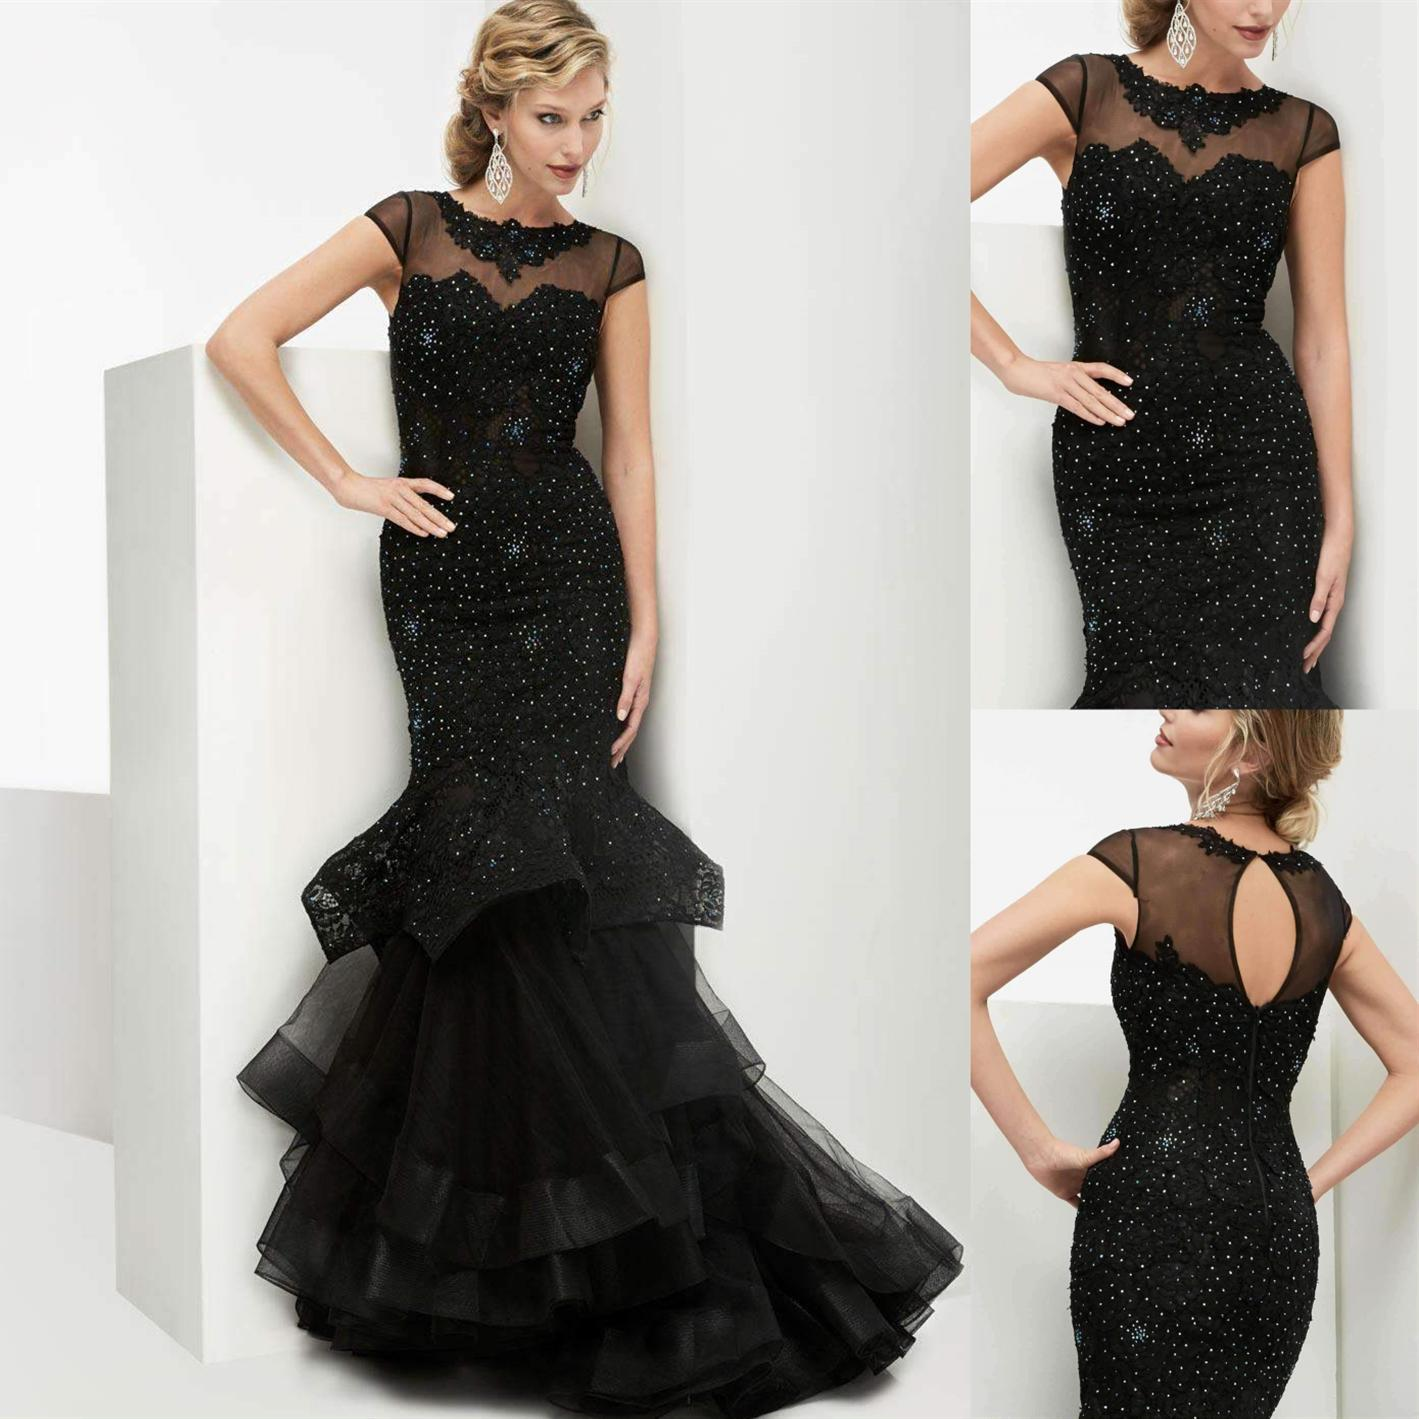 5928a80e3a Mermaid Long Prom Dresses Black Sexy Jewel Neck Short Sleeve Lace Tulle  Formal Evening Gowns With Key Hole Back Women Elegant Party Dress Sequin  Prom Dress ...